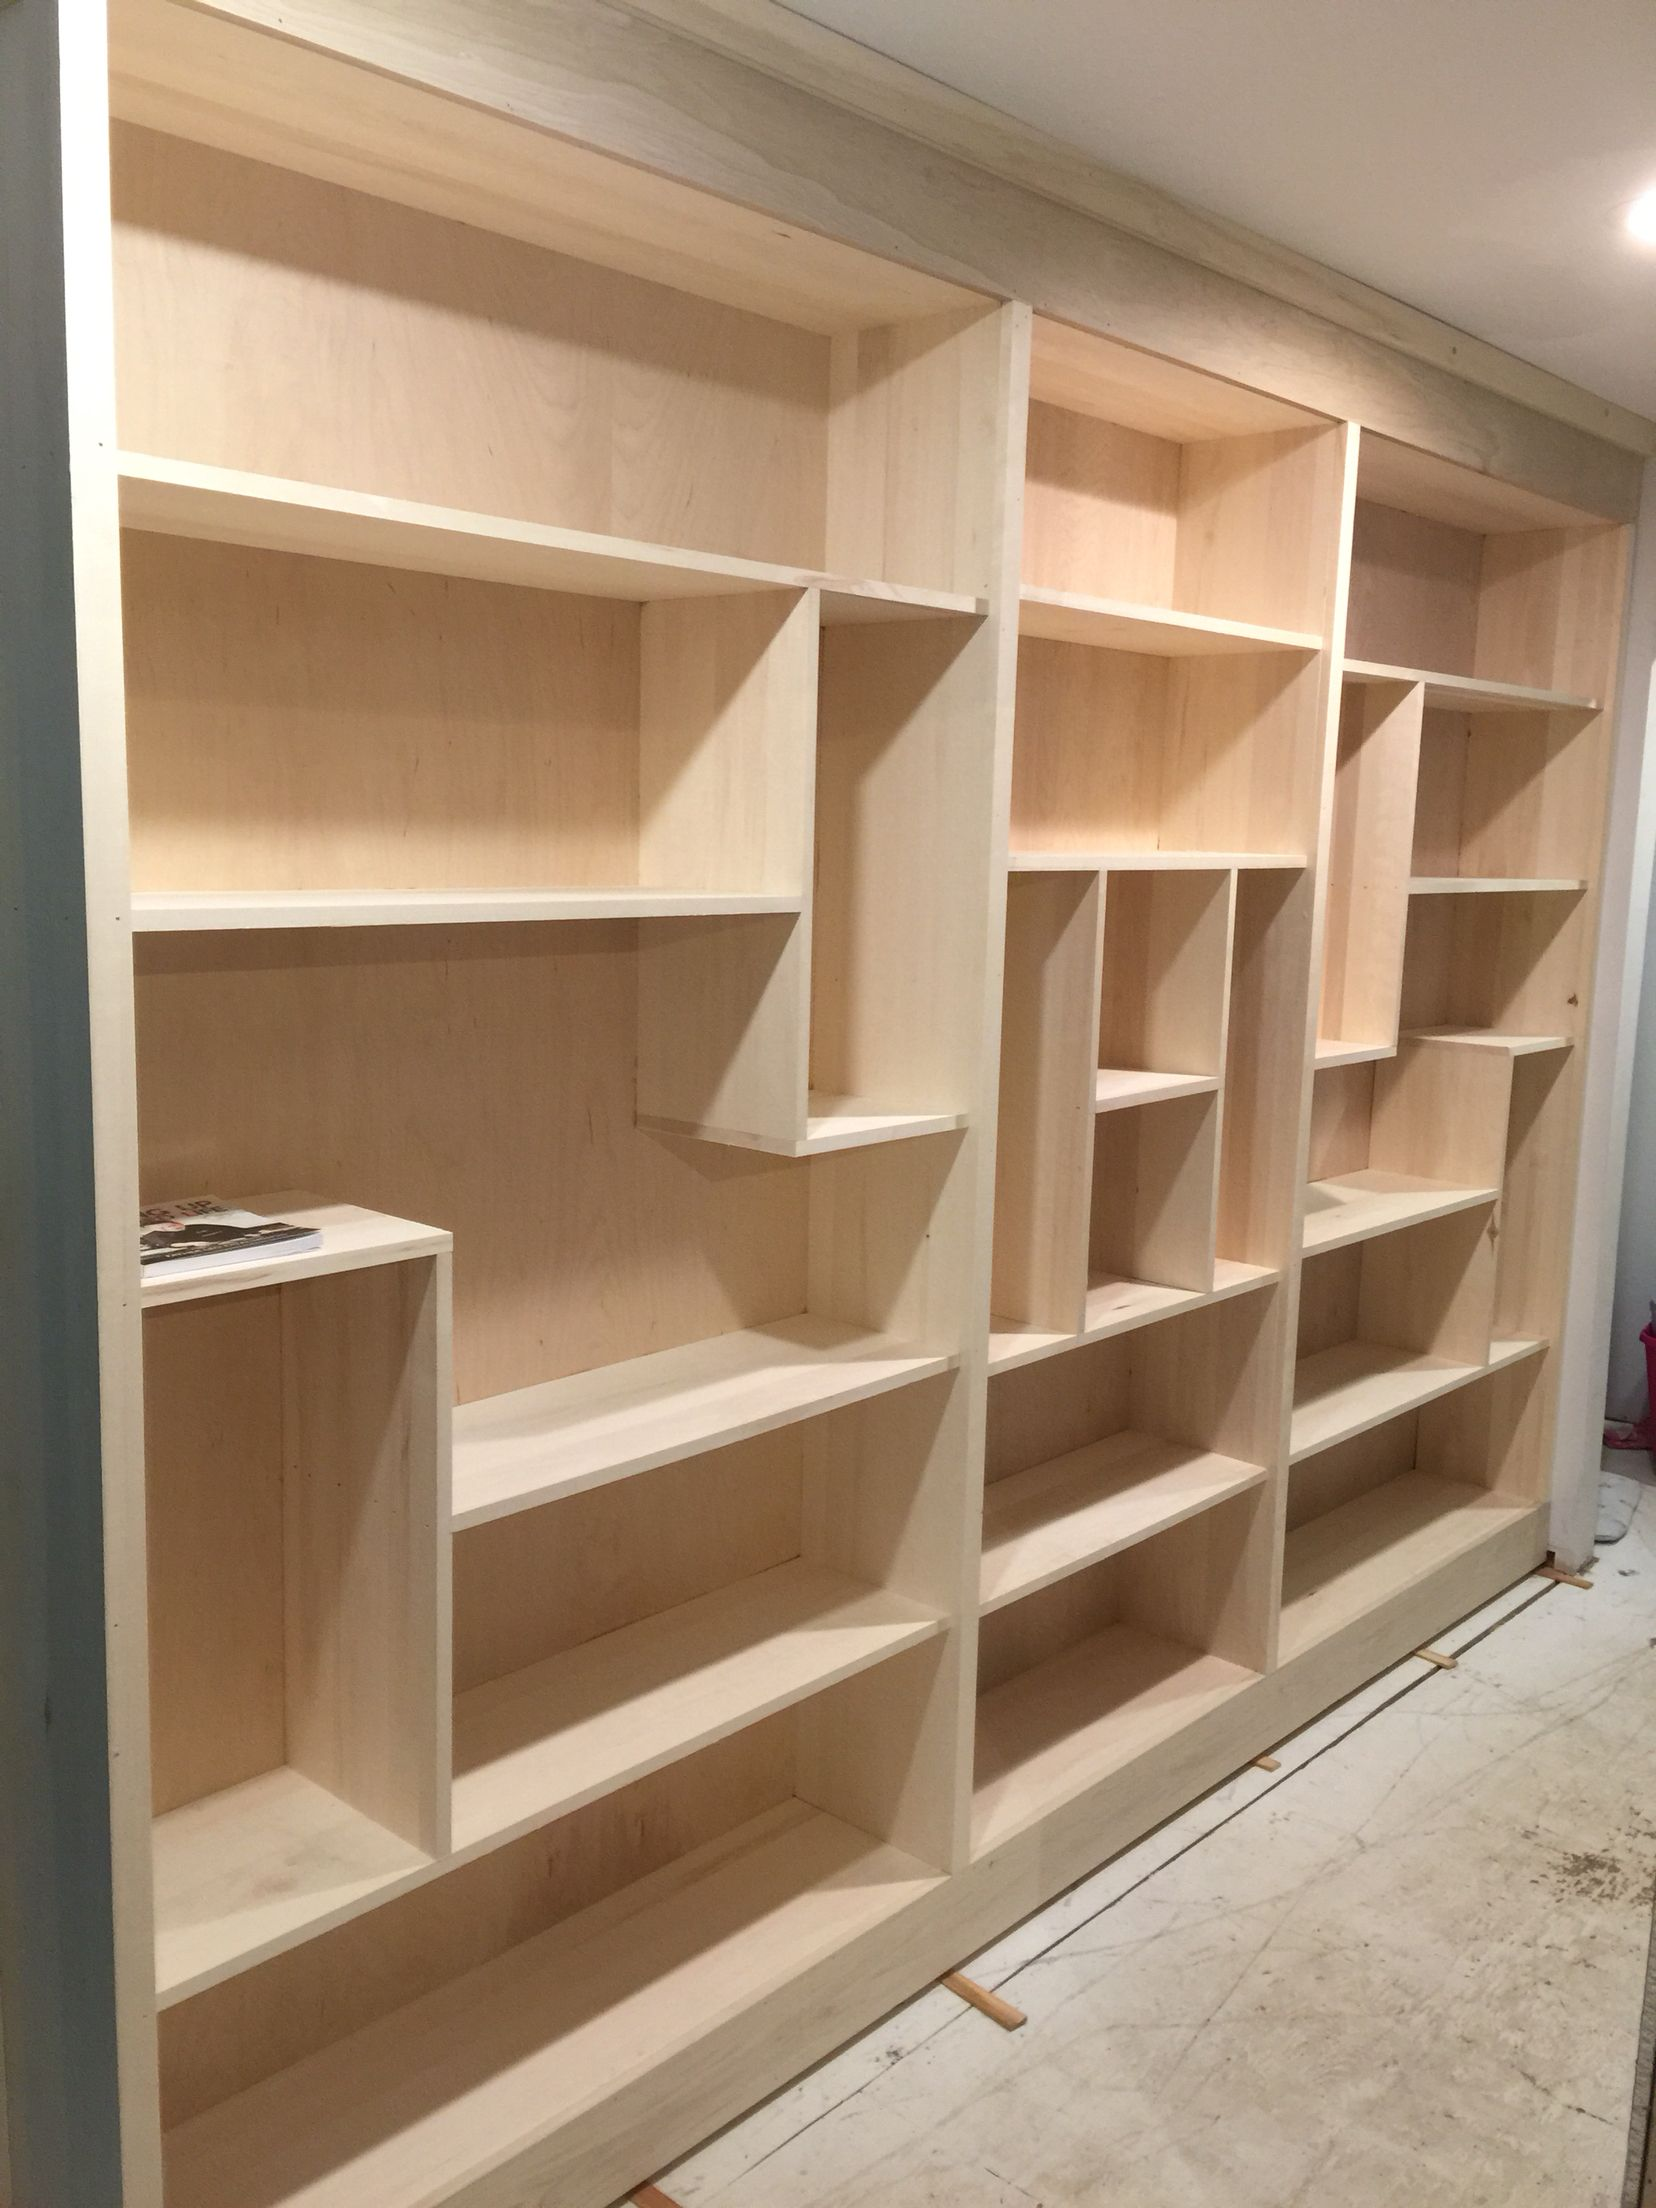 Hallway Tetris Bookcase Built Ins Are Great 11 Ft Total Length Creates Awesome Hallway Library En Bookshelves Built In Diy Wood Shelves Bookshelves Diy